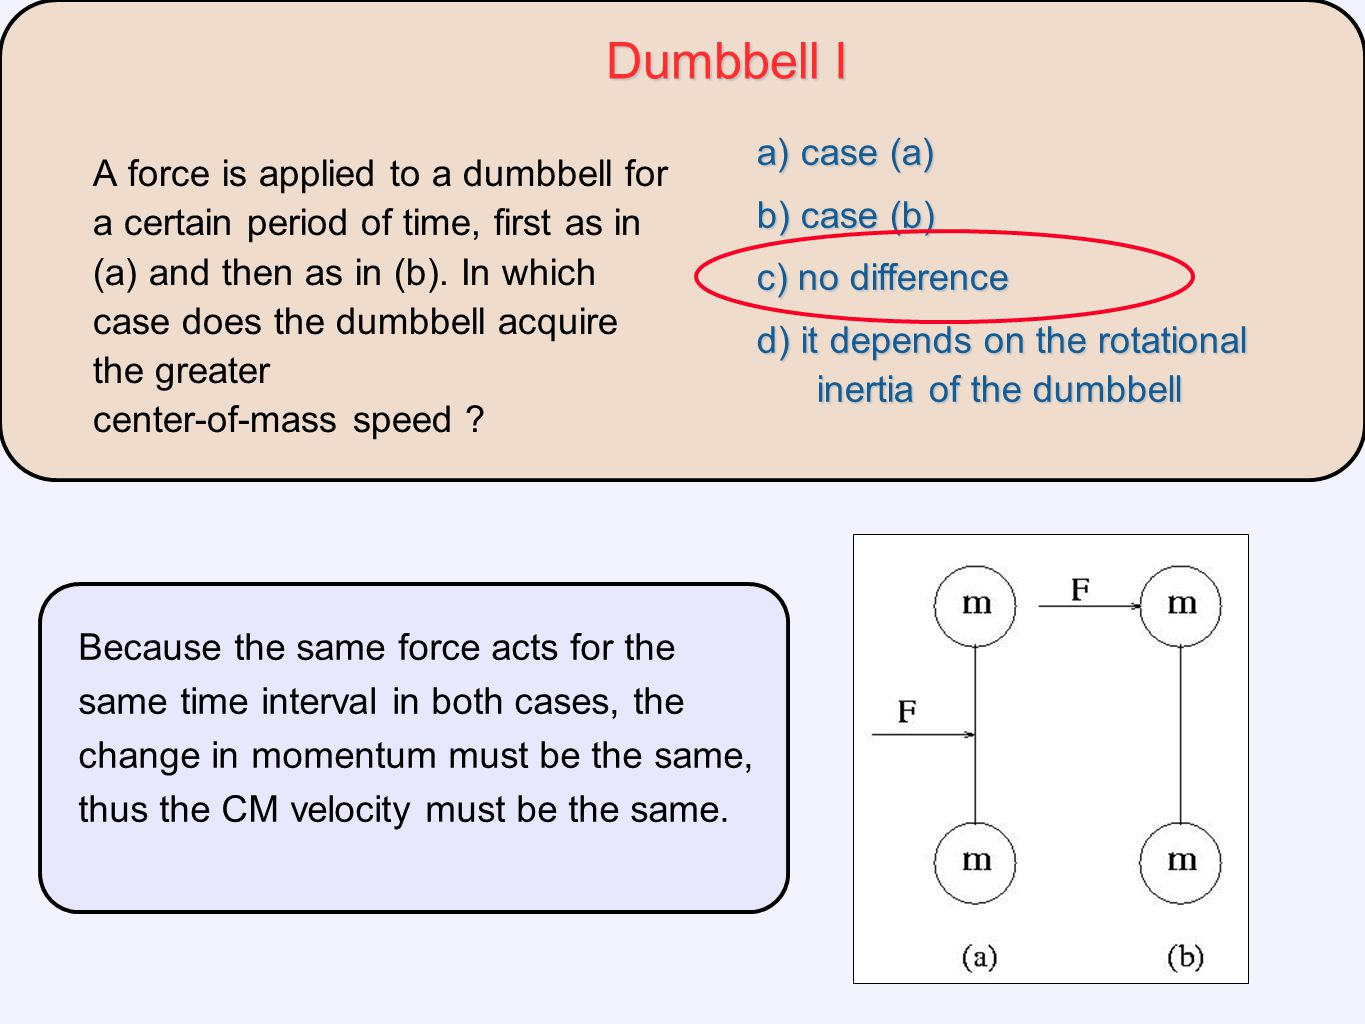 Dumbbell I a) case (a) b) case (b) c) no difference d) it depends on the rotational inertia of the dumbbell A force is applied to a dumbbell for a cer